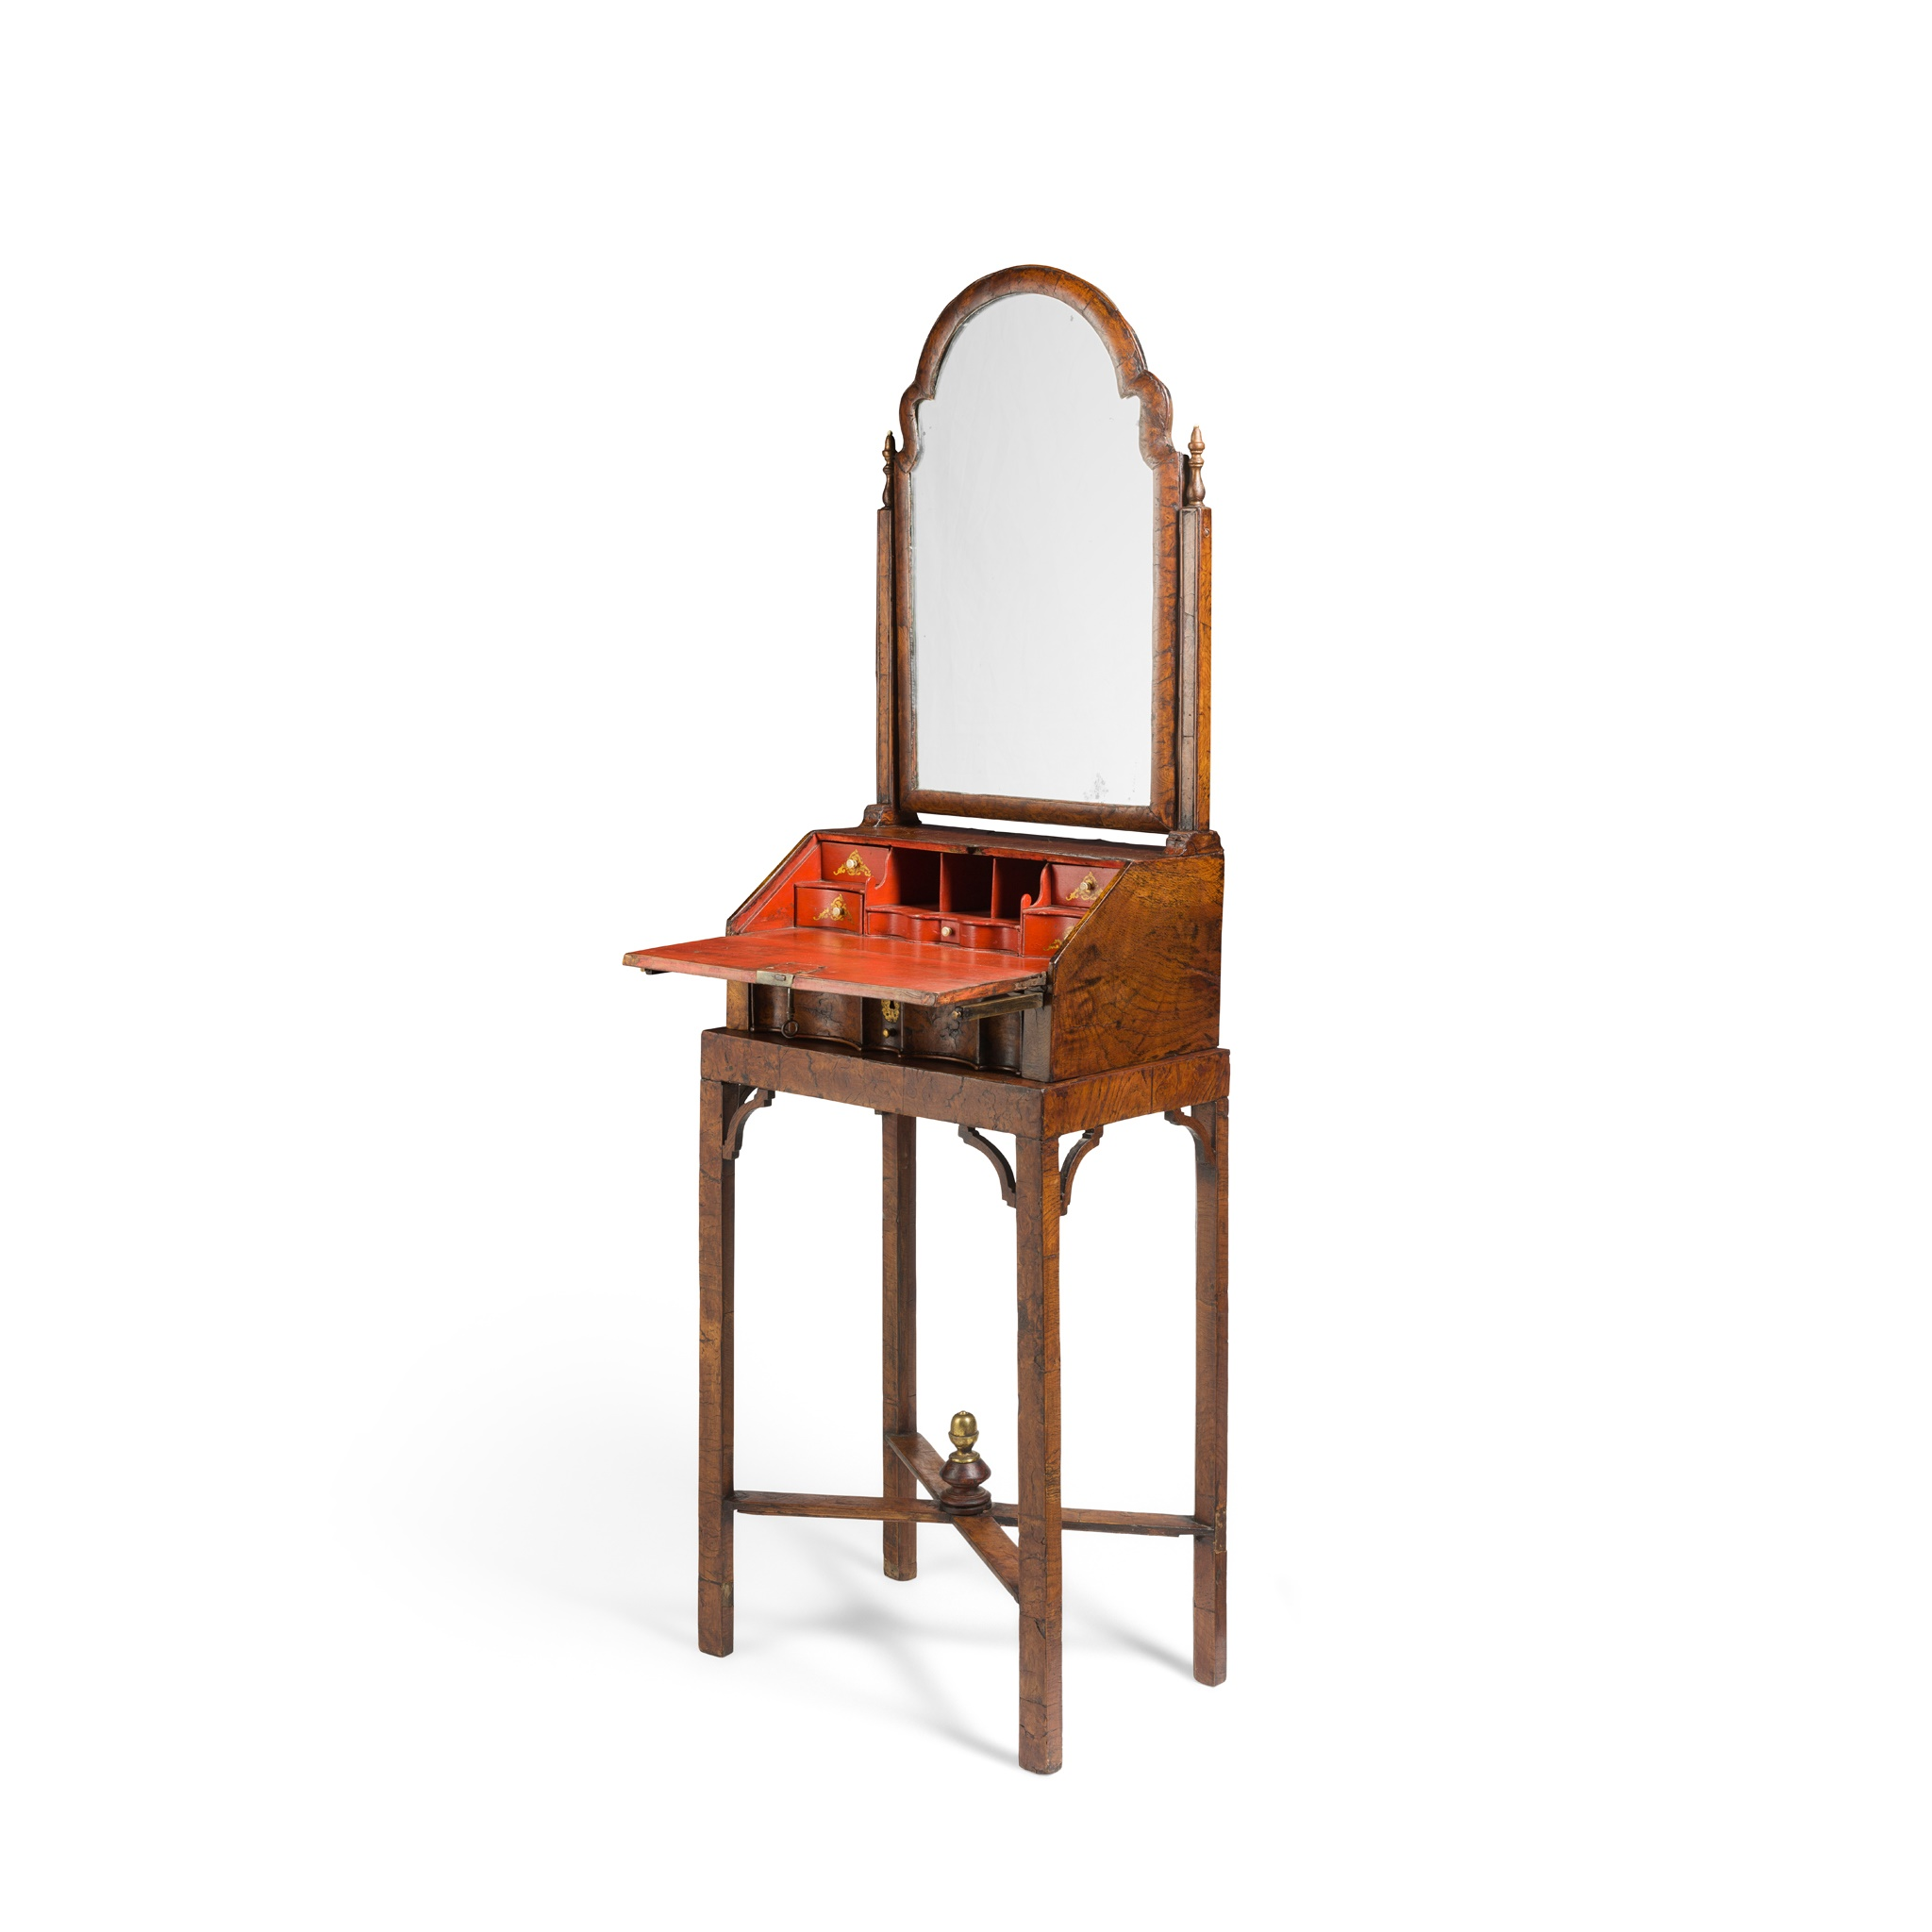 QUEEN ANNE BURR ELM AND RED JAPANNED TOILET MIRROR ON STAND EARLY 17TH CENTURY - Image 2 of 2